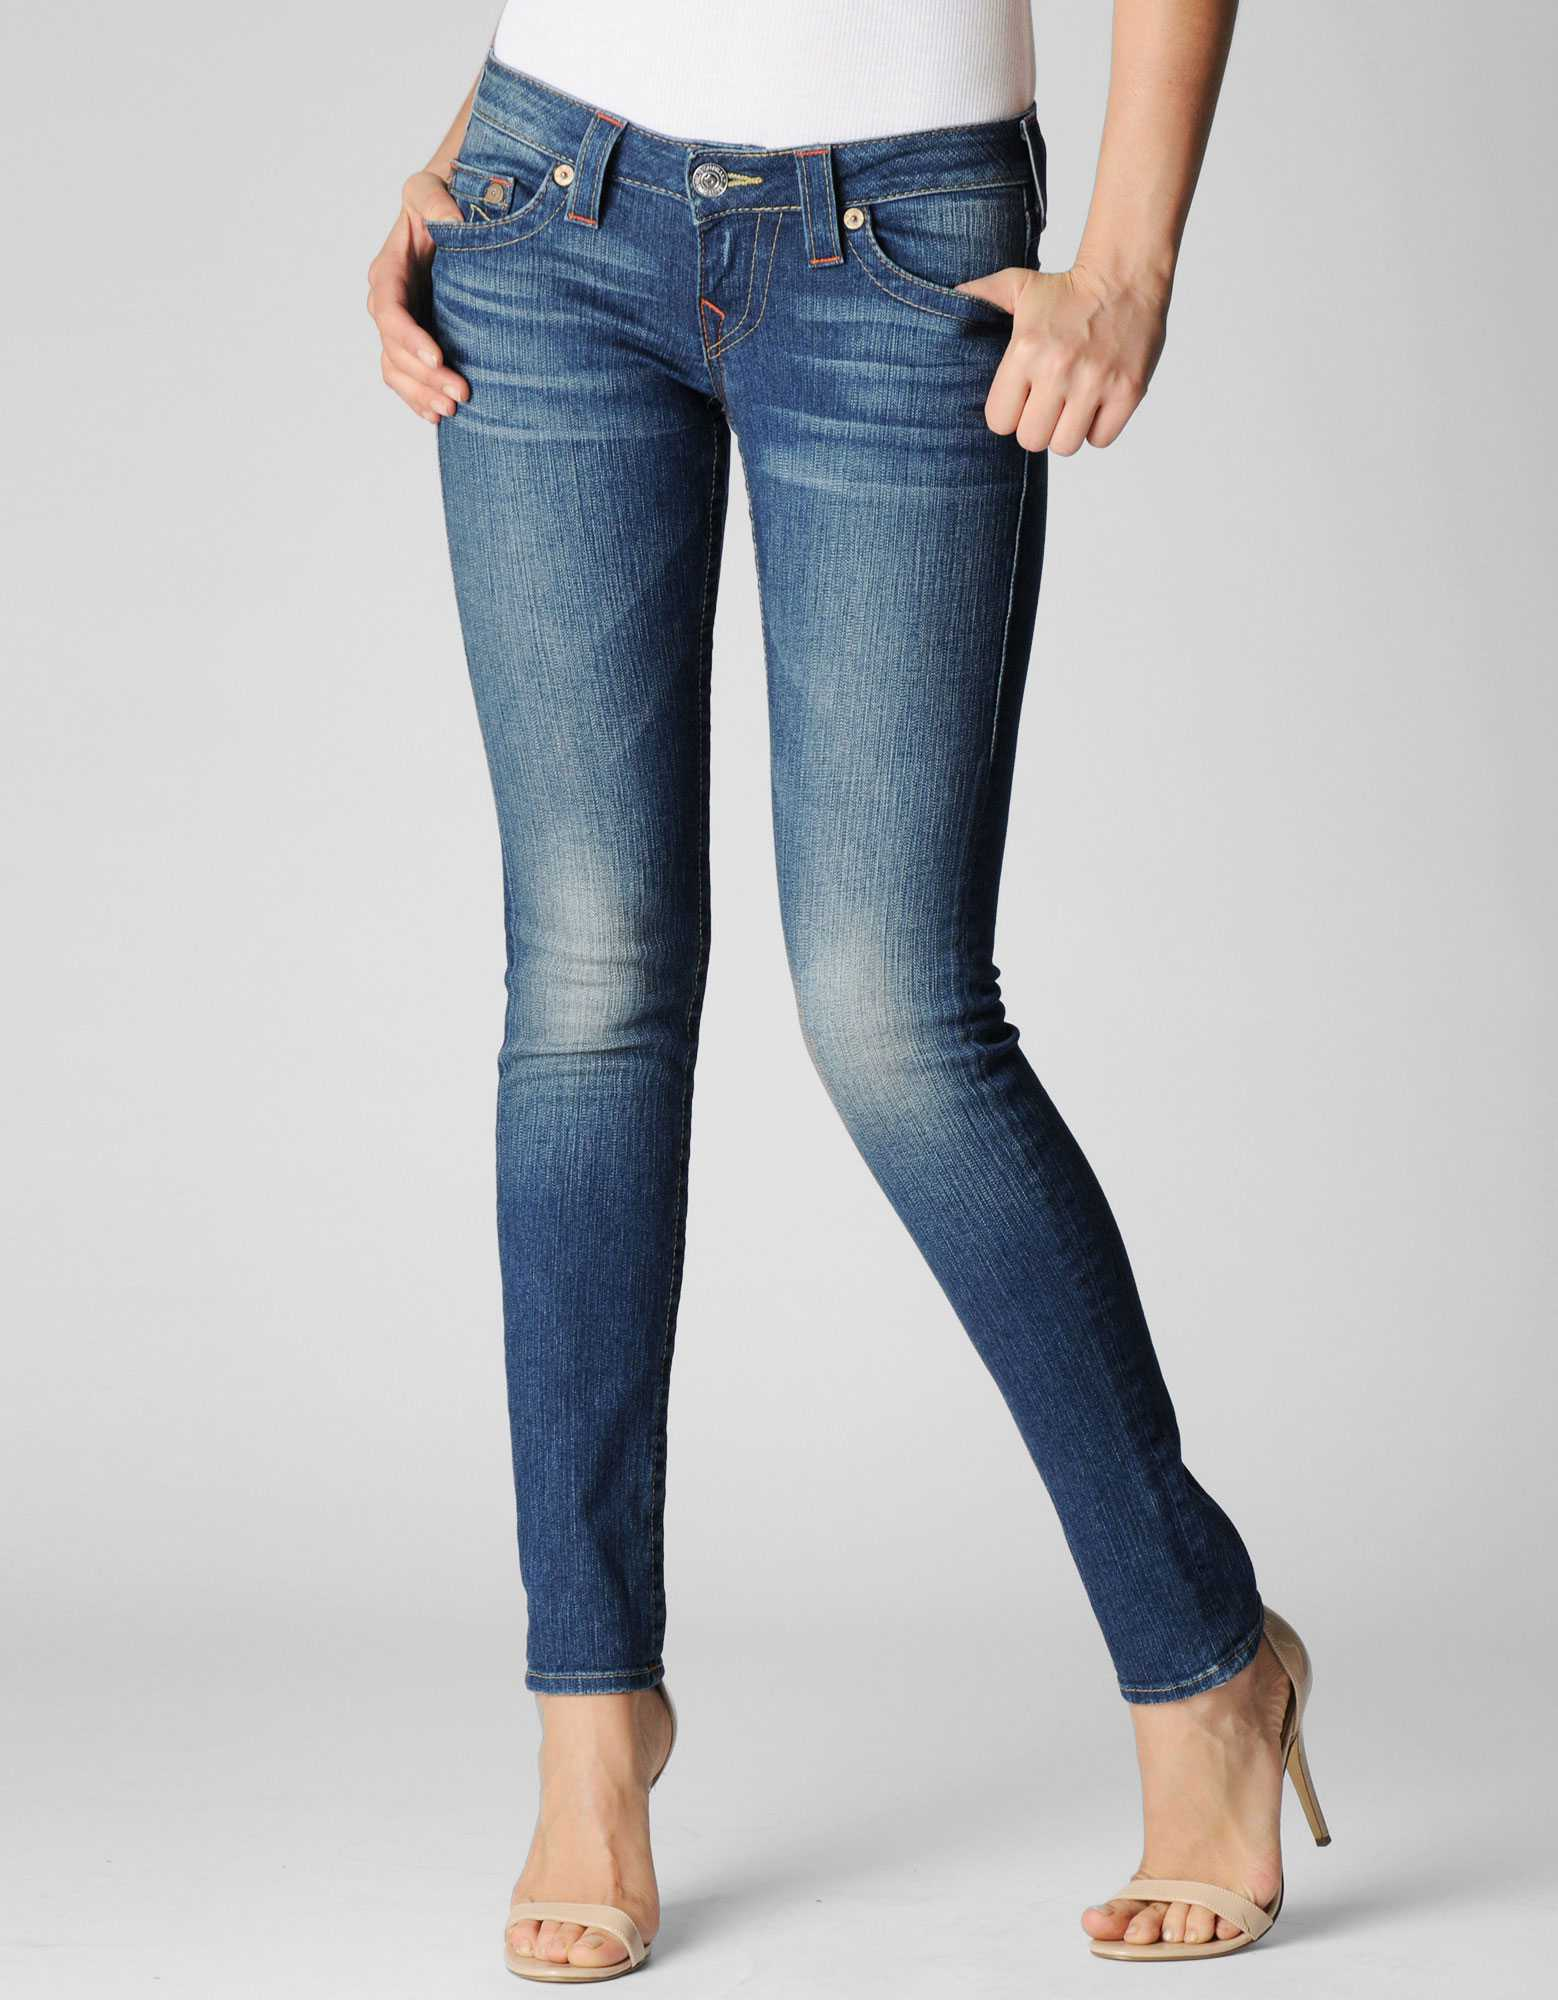 89afd139eb64f Are Your Best Jeans Mid Rise